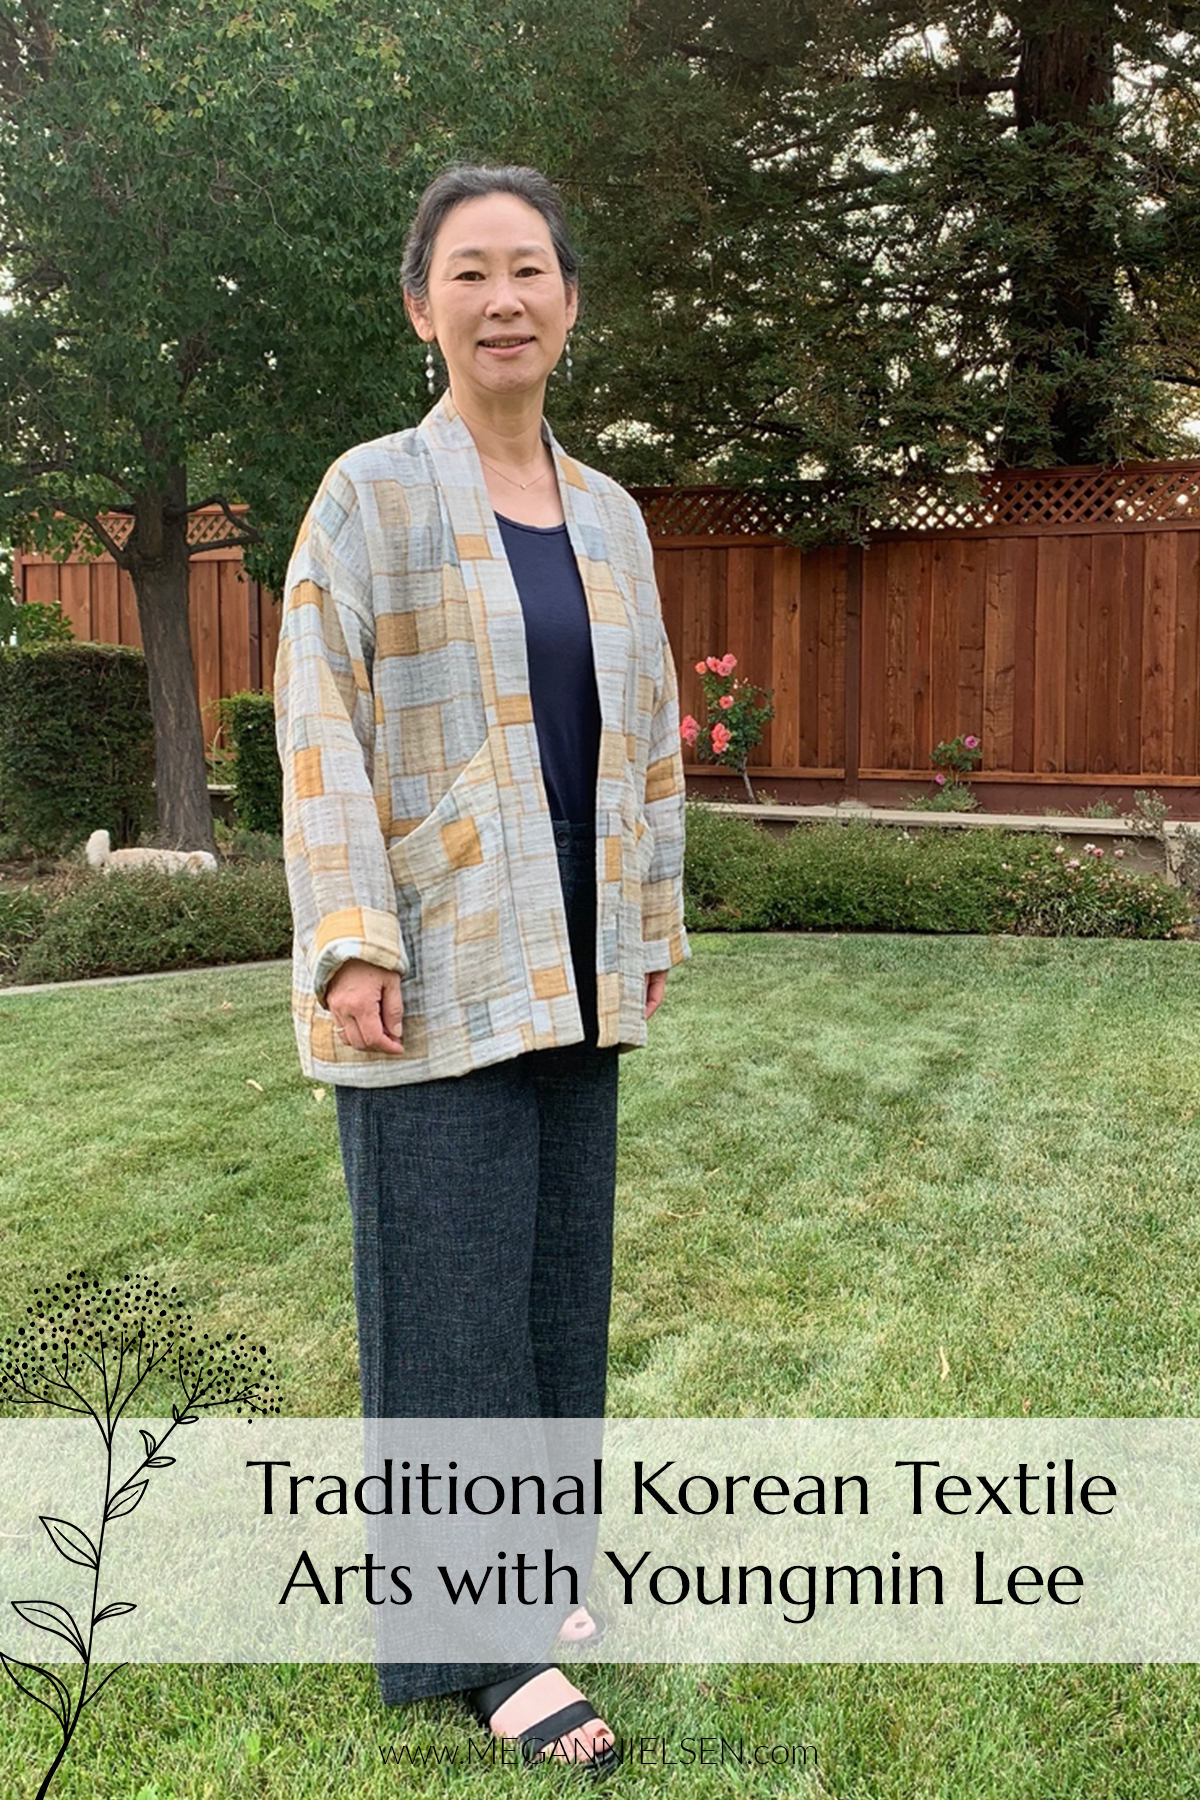 Traditional Korean Textile Arts with Youngmin Lee